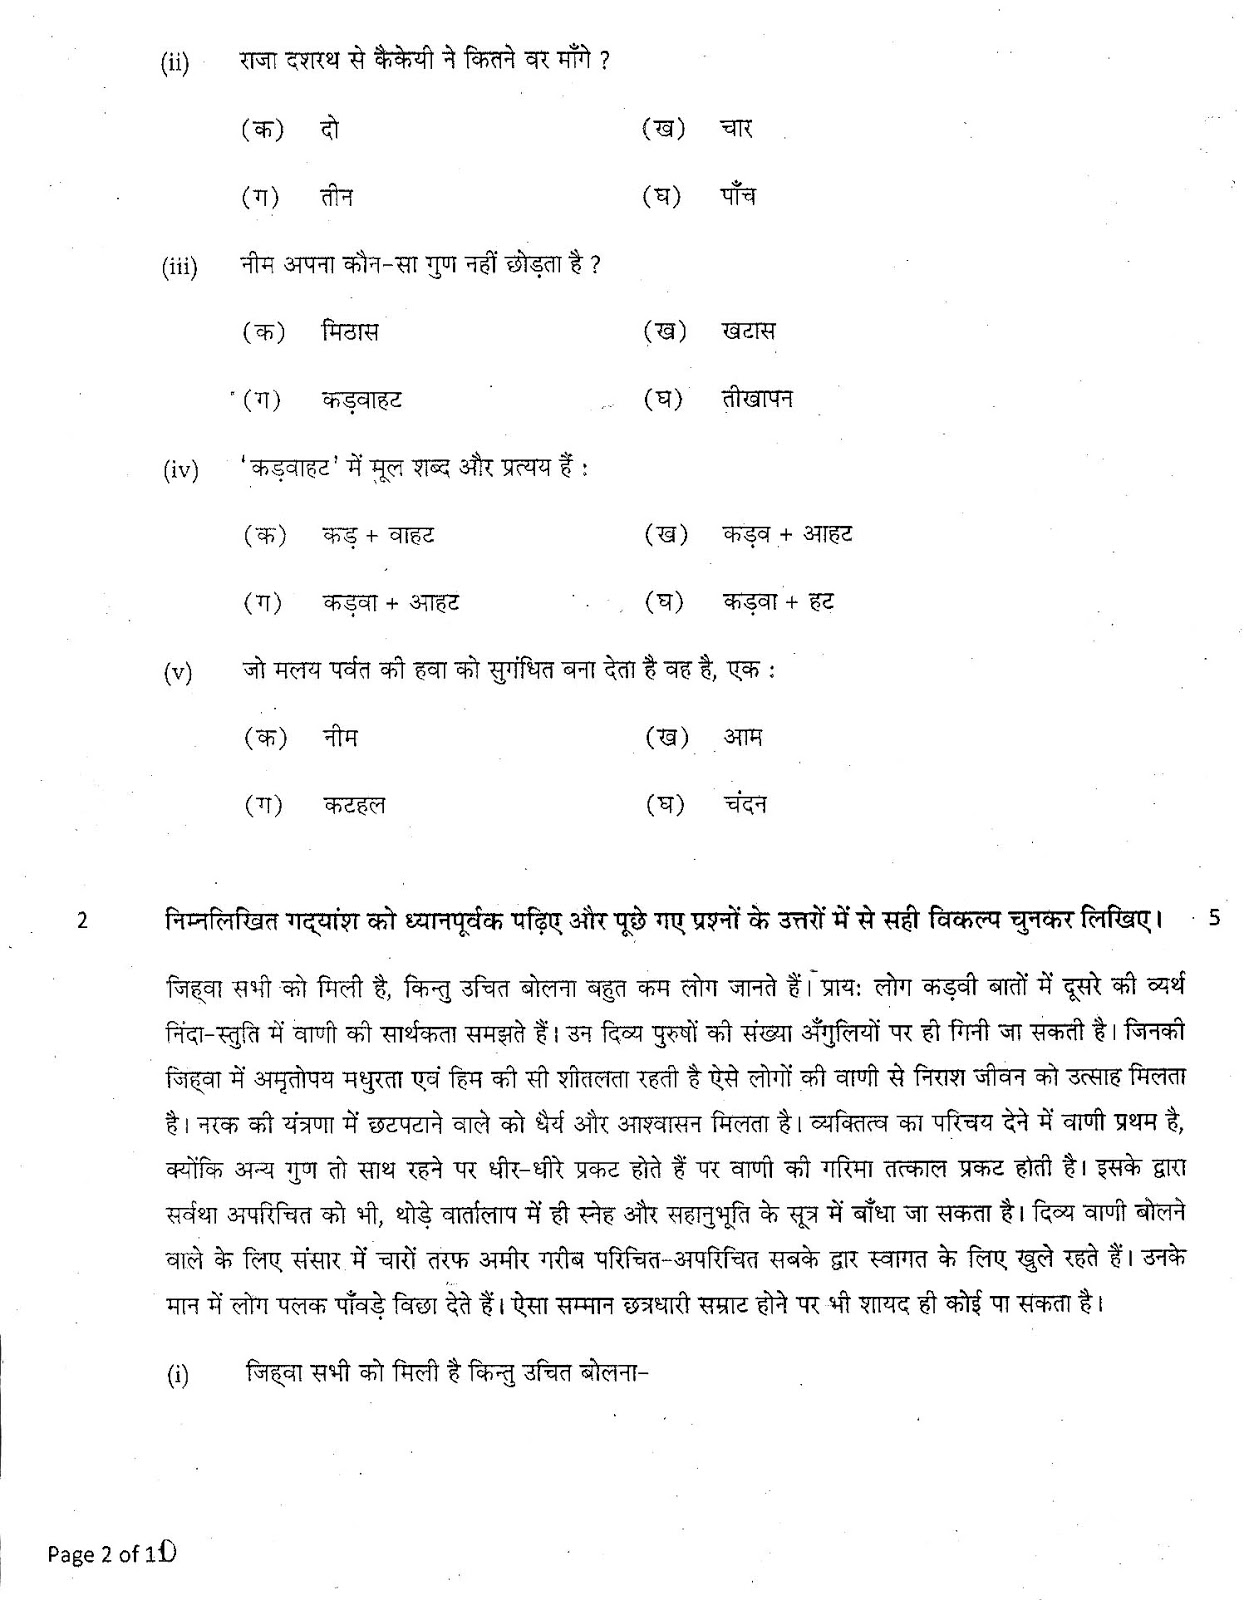 vii class formative paper Cbse class 7 syllabus  every year the school conducts two summative assessments and four formative assessments for the students  the question paper syllabus .